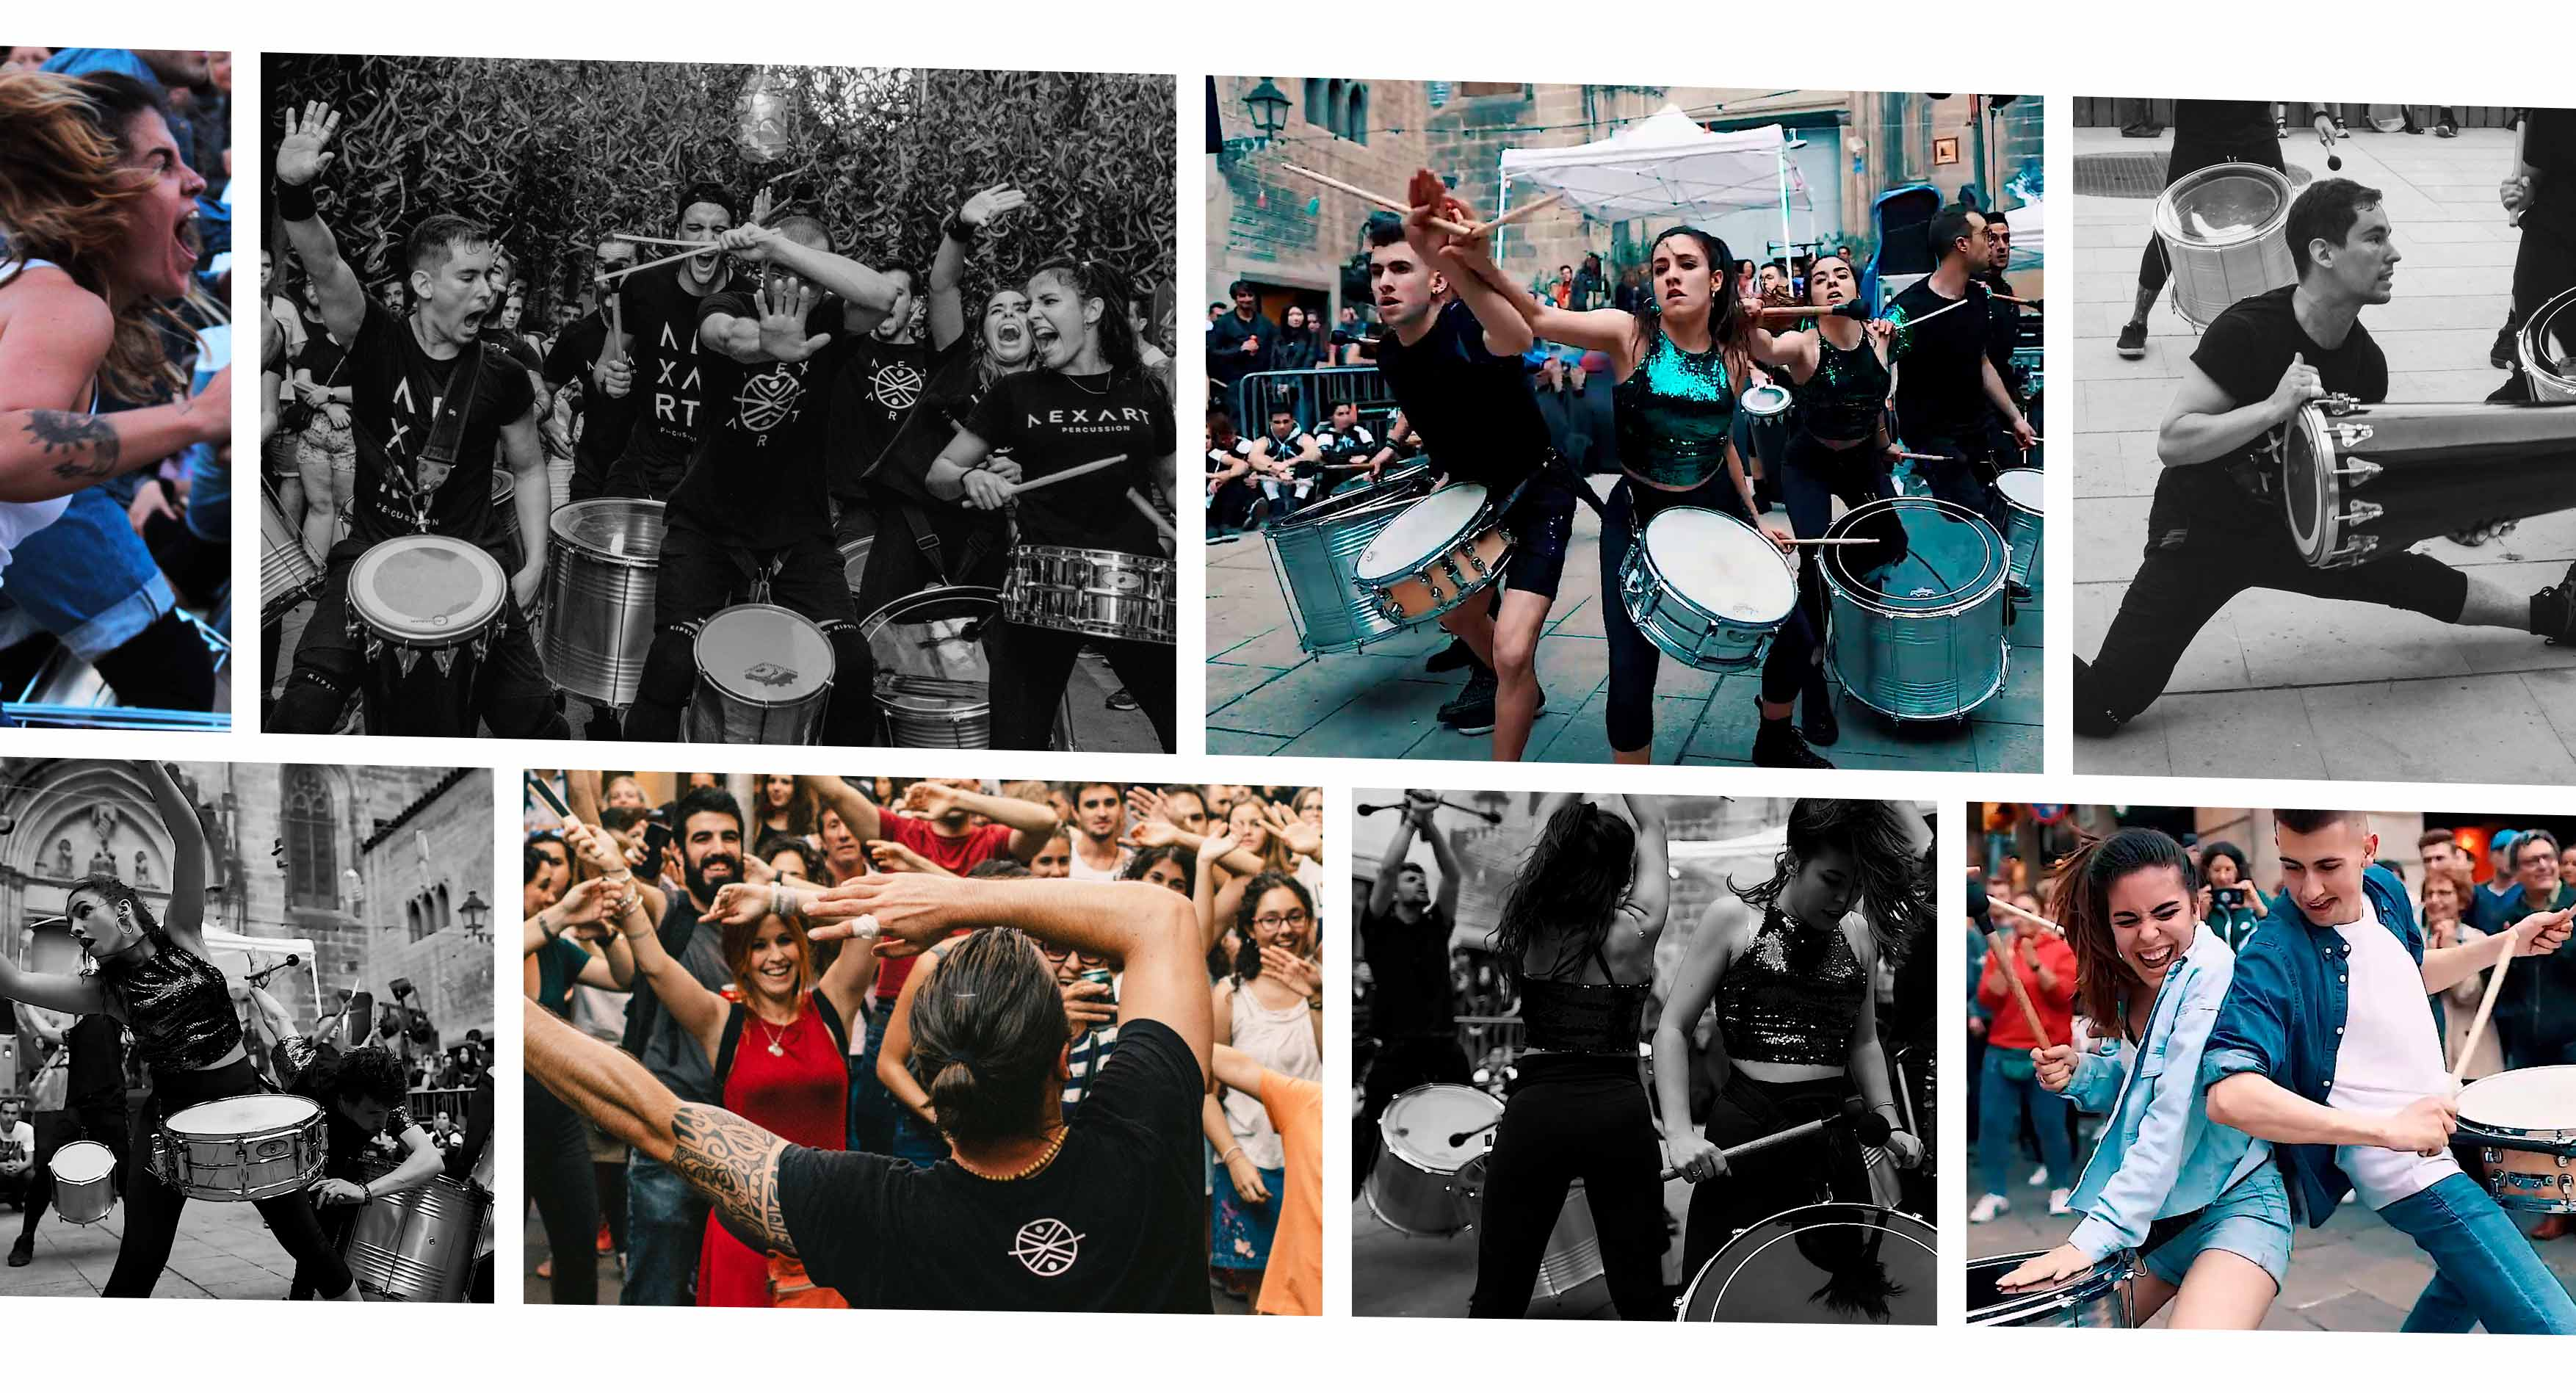 Collage de fotos de Nexart Percussion actuando en la calle